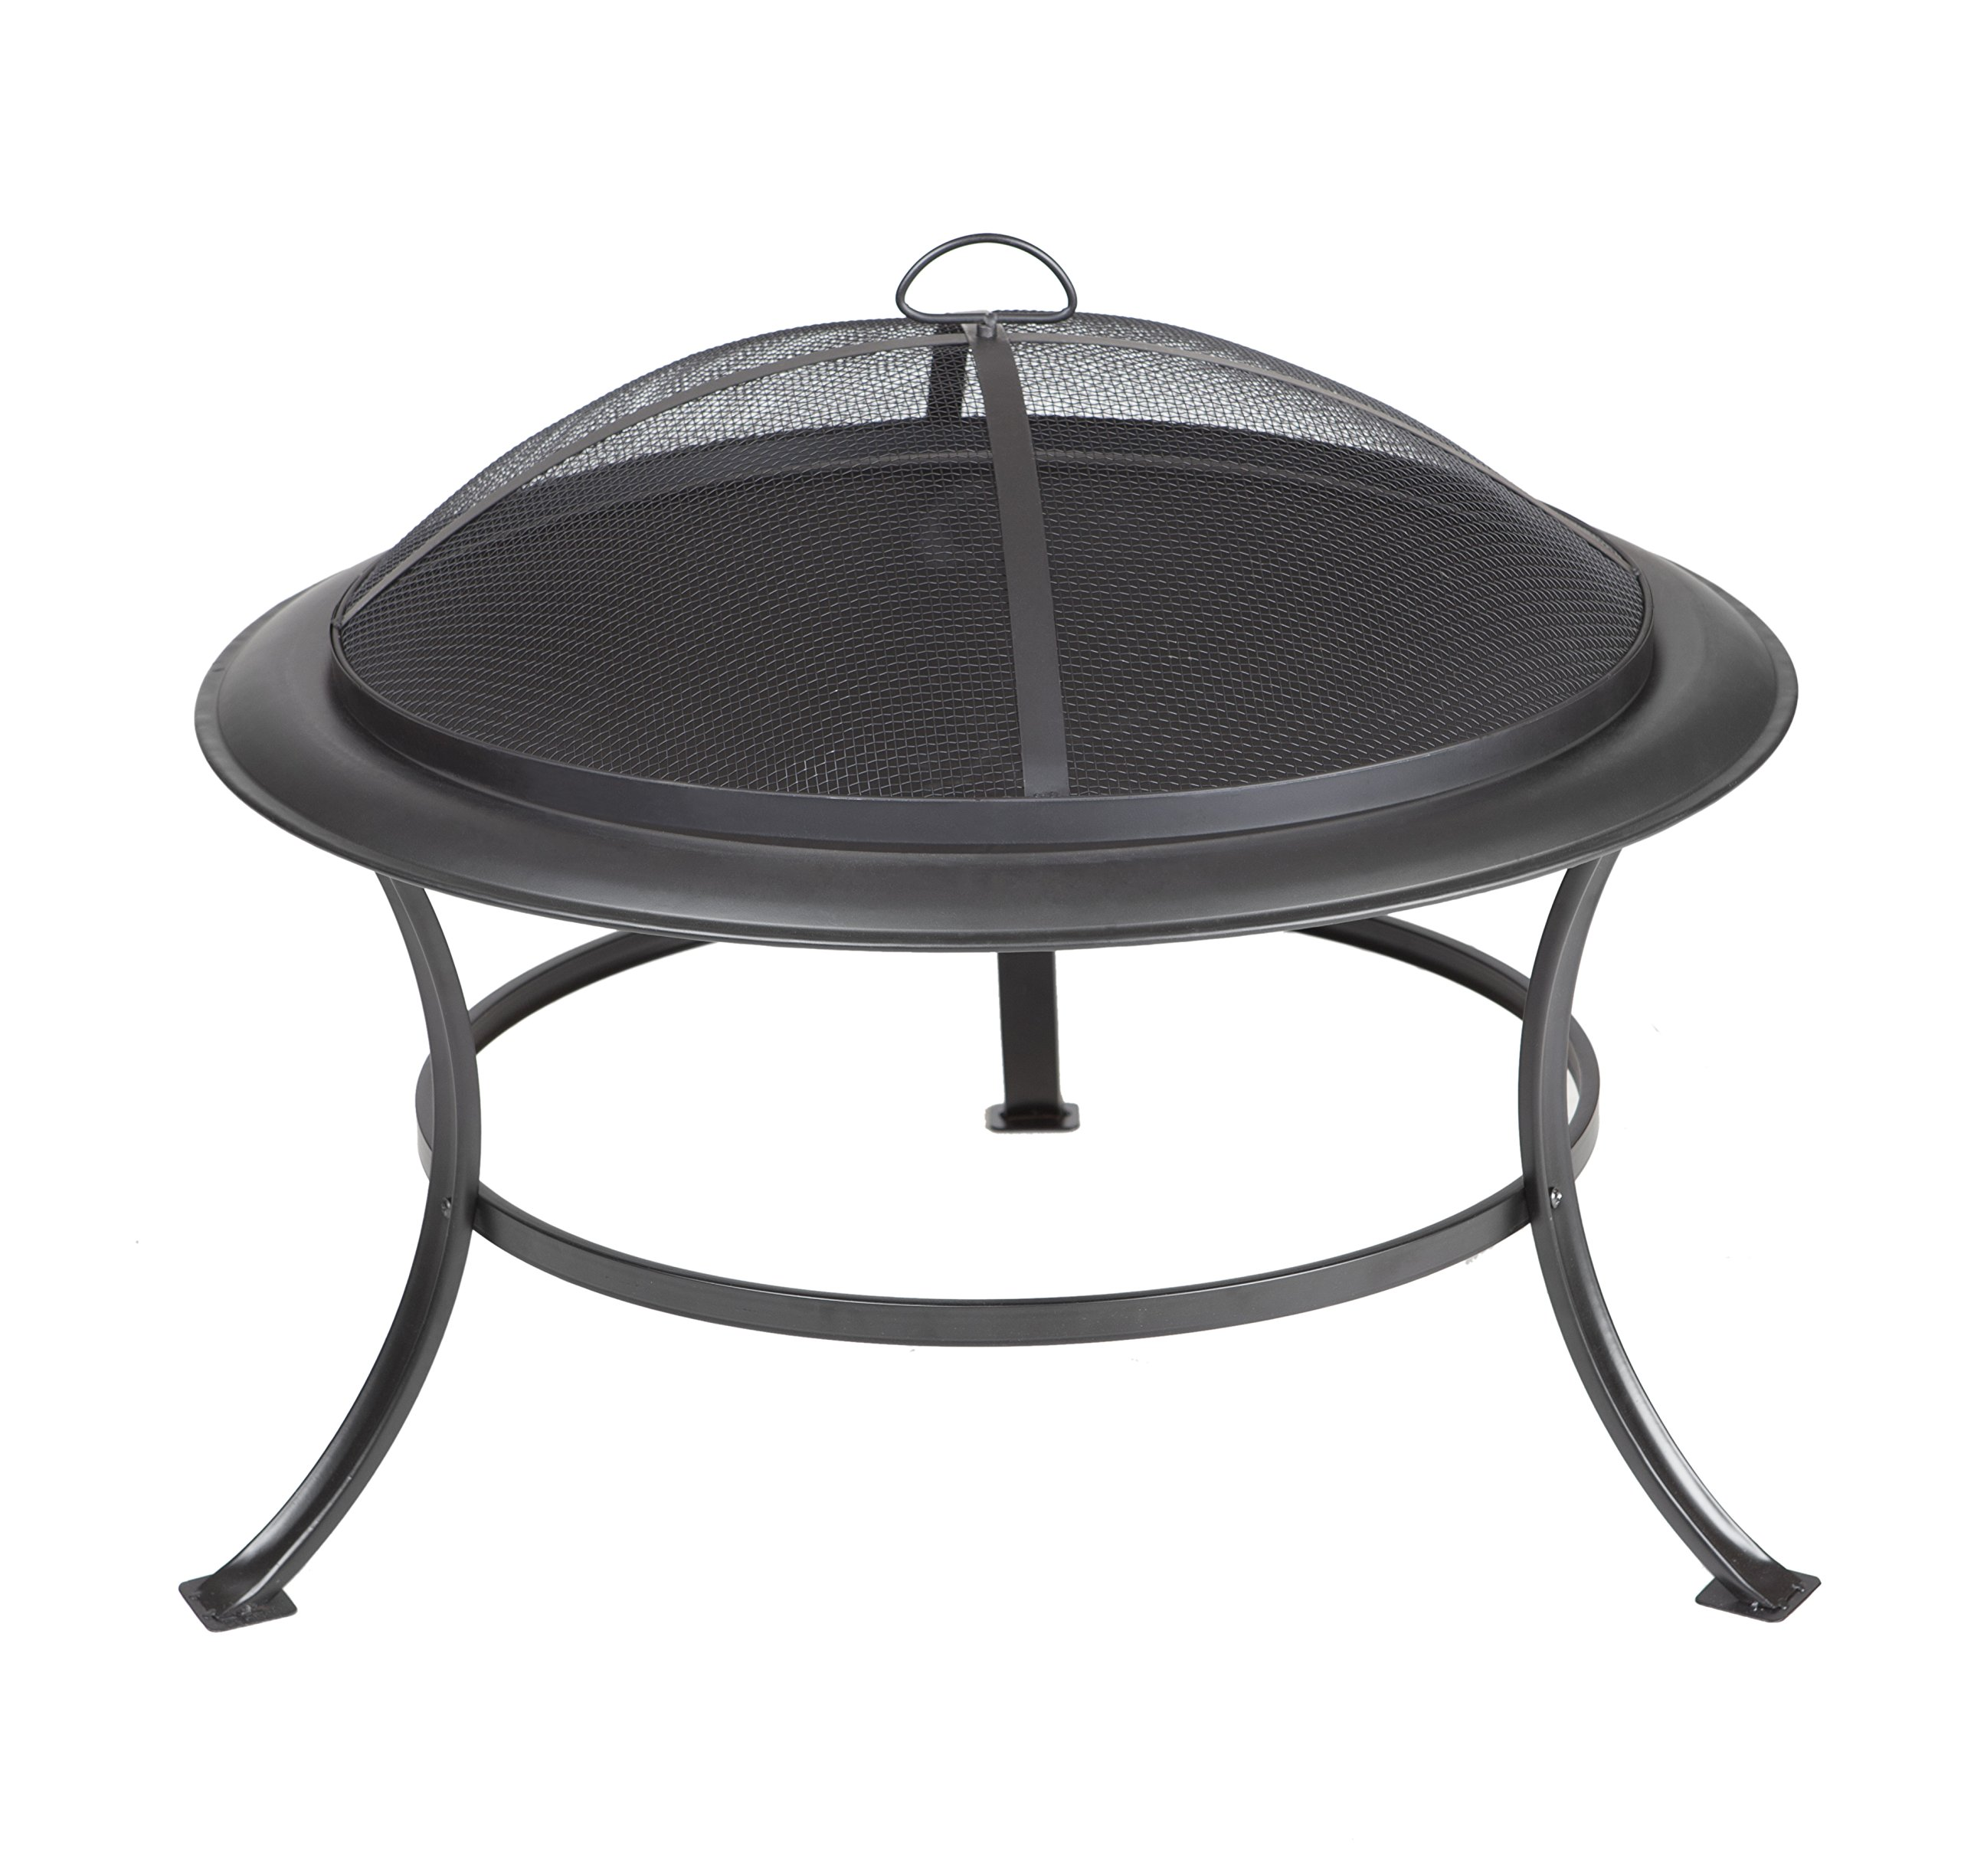 Fire Sense Tokia Round Black Steel 30 Inch Fire Pit with Stand | Wood Burning | Mesh Spark Screen, Wood Grate, and… - This outdoor fire pit has been constructed using black painted steel. The black fire pit features a steel fire bowl with a rounded lip and curved legs. This large fire pit uses wood chunks as its source of fuel. - patio, outdoor-decor, fire-pits-outdoor-fireplaces - 81Is8itrbAL -